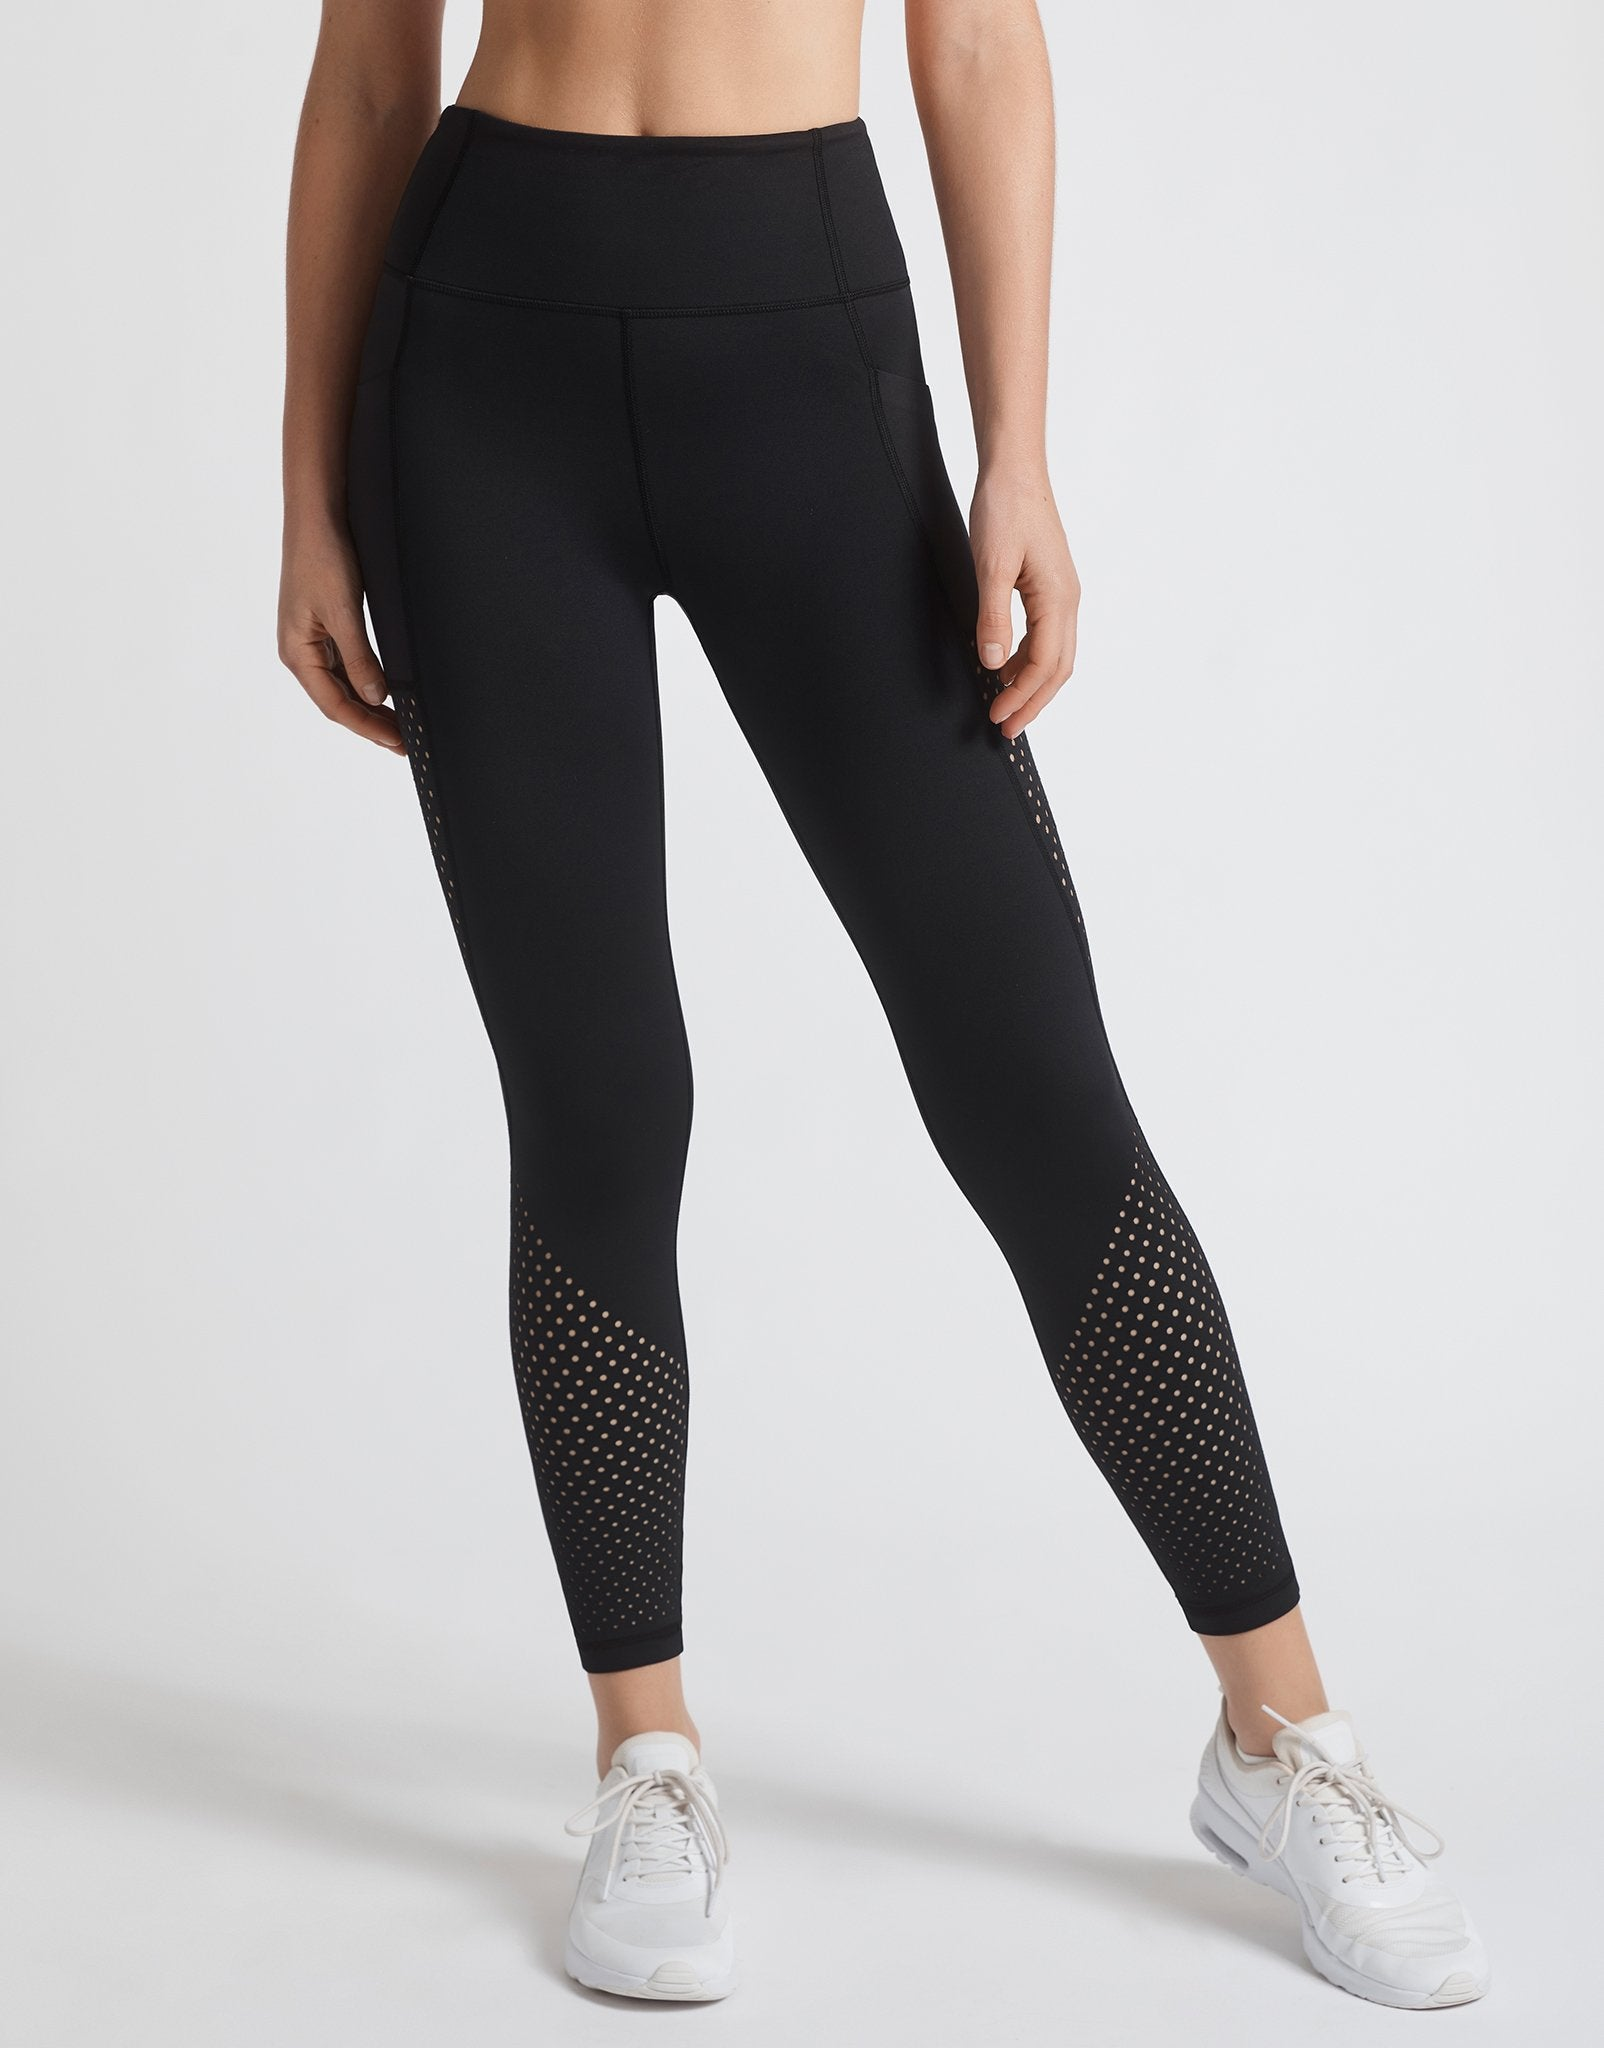 Lilybod-Daria-Phantom-Jet-Lasercut-Legging-side.jpg